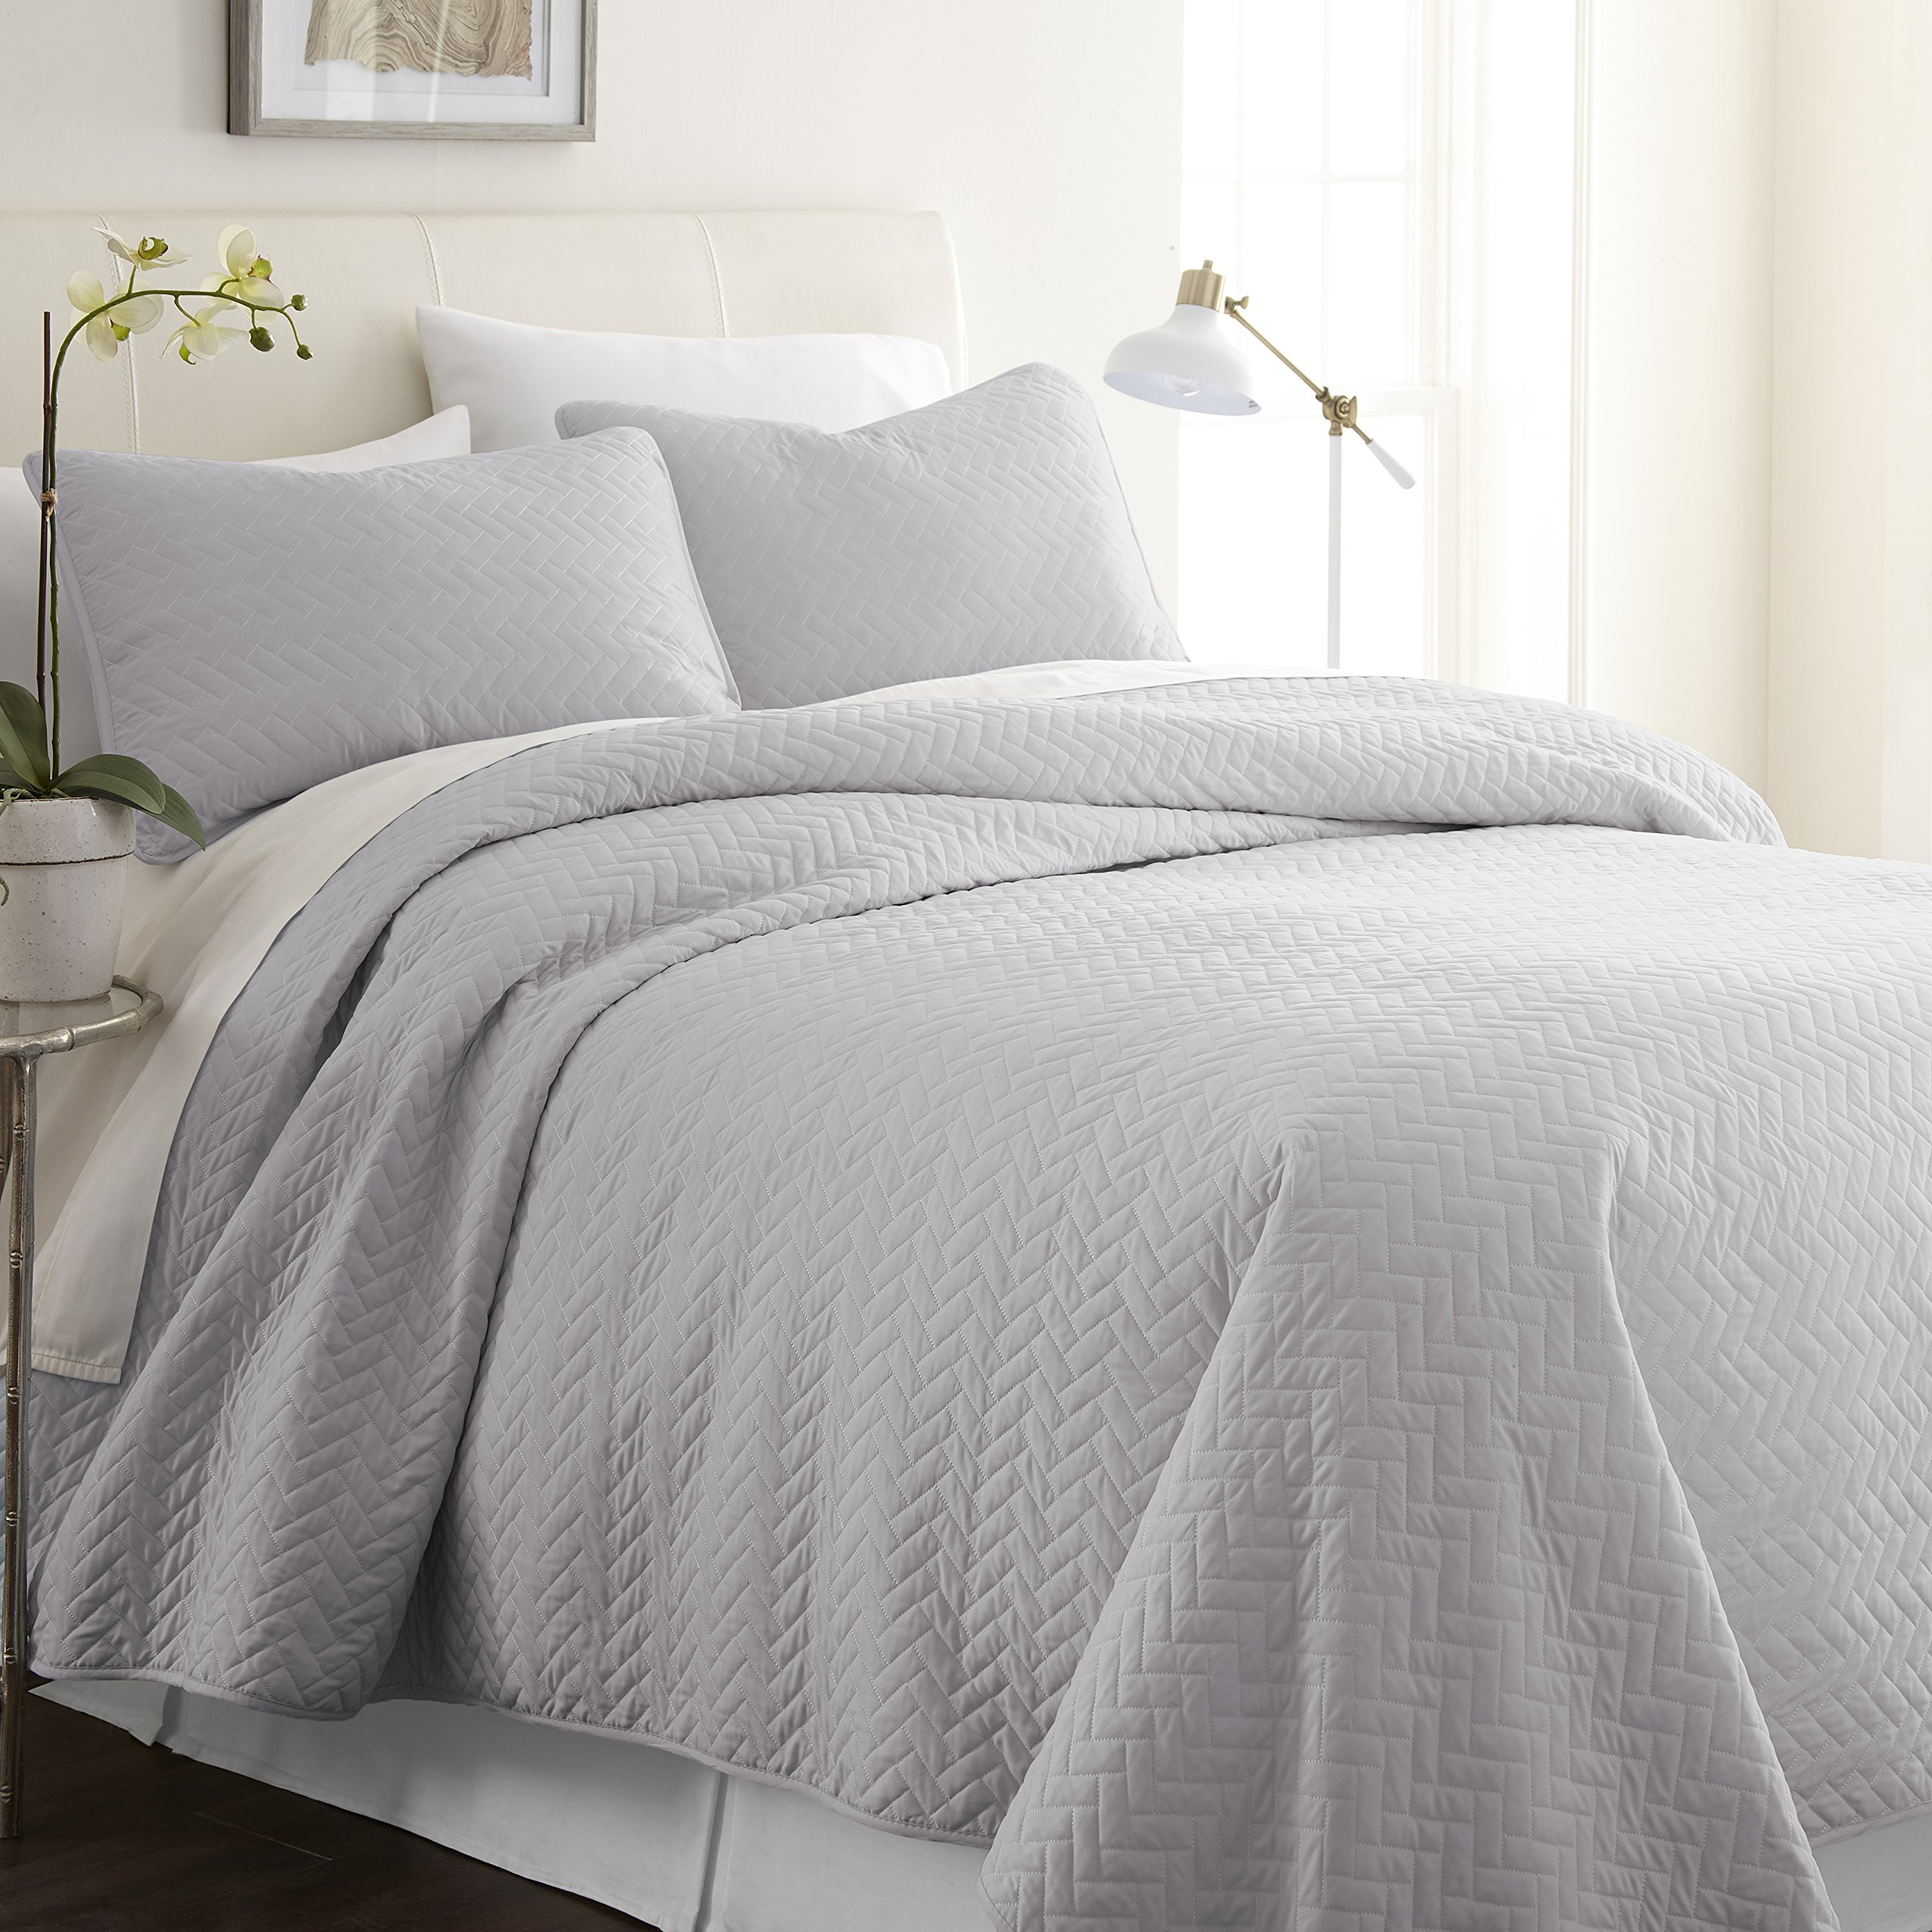 ienjy Home Herring Patterned Quilted Coverlet Set, King, Gray